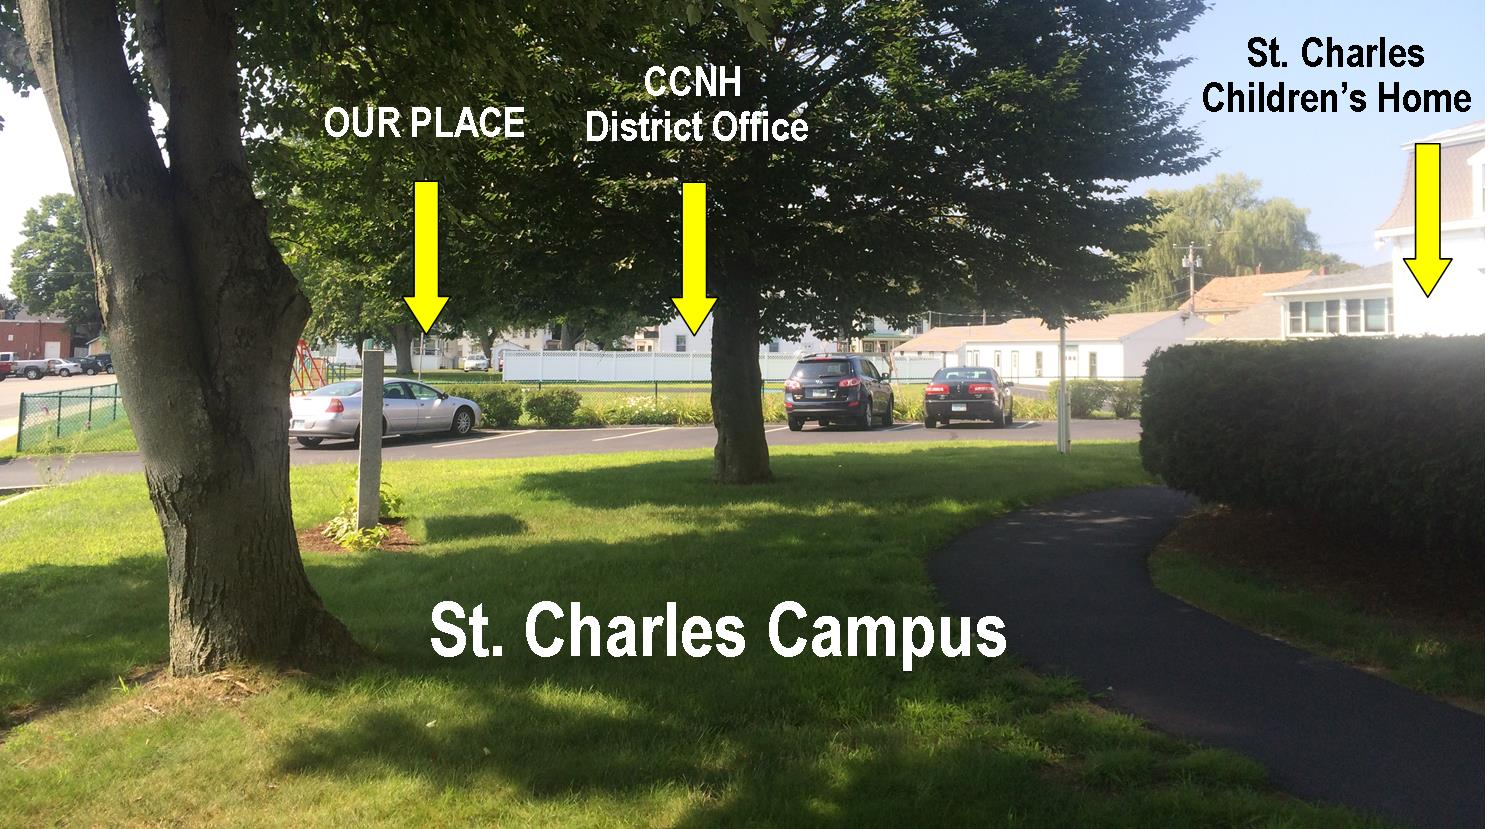 St. Charles Campus